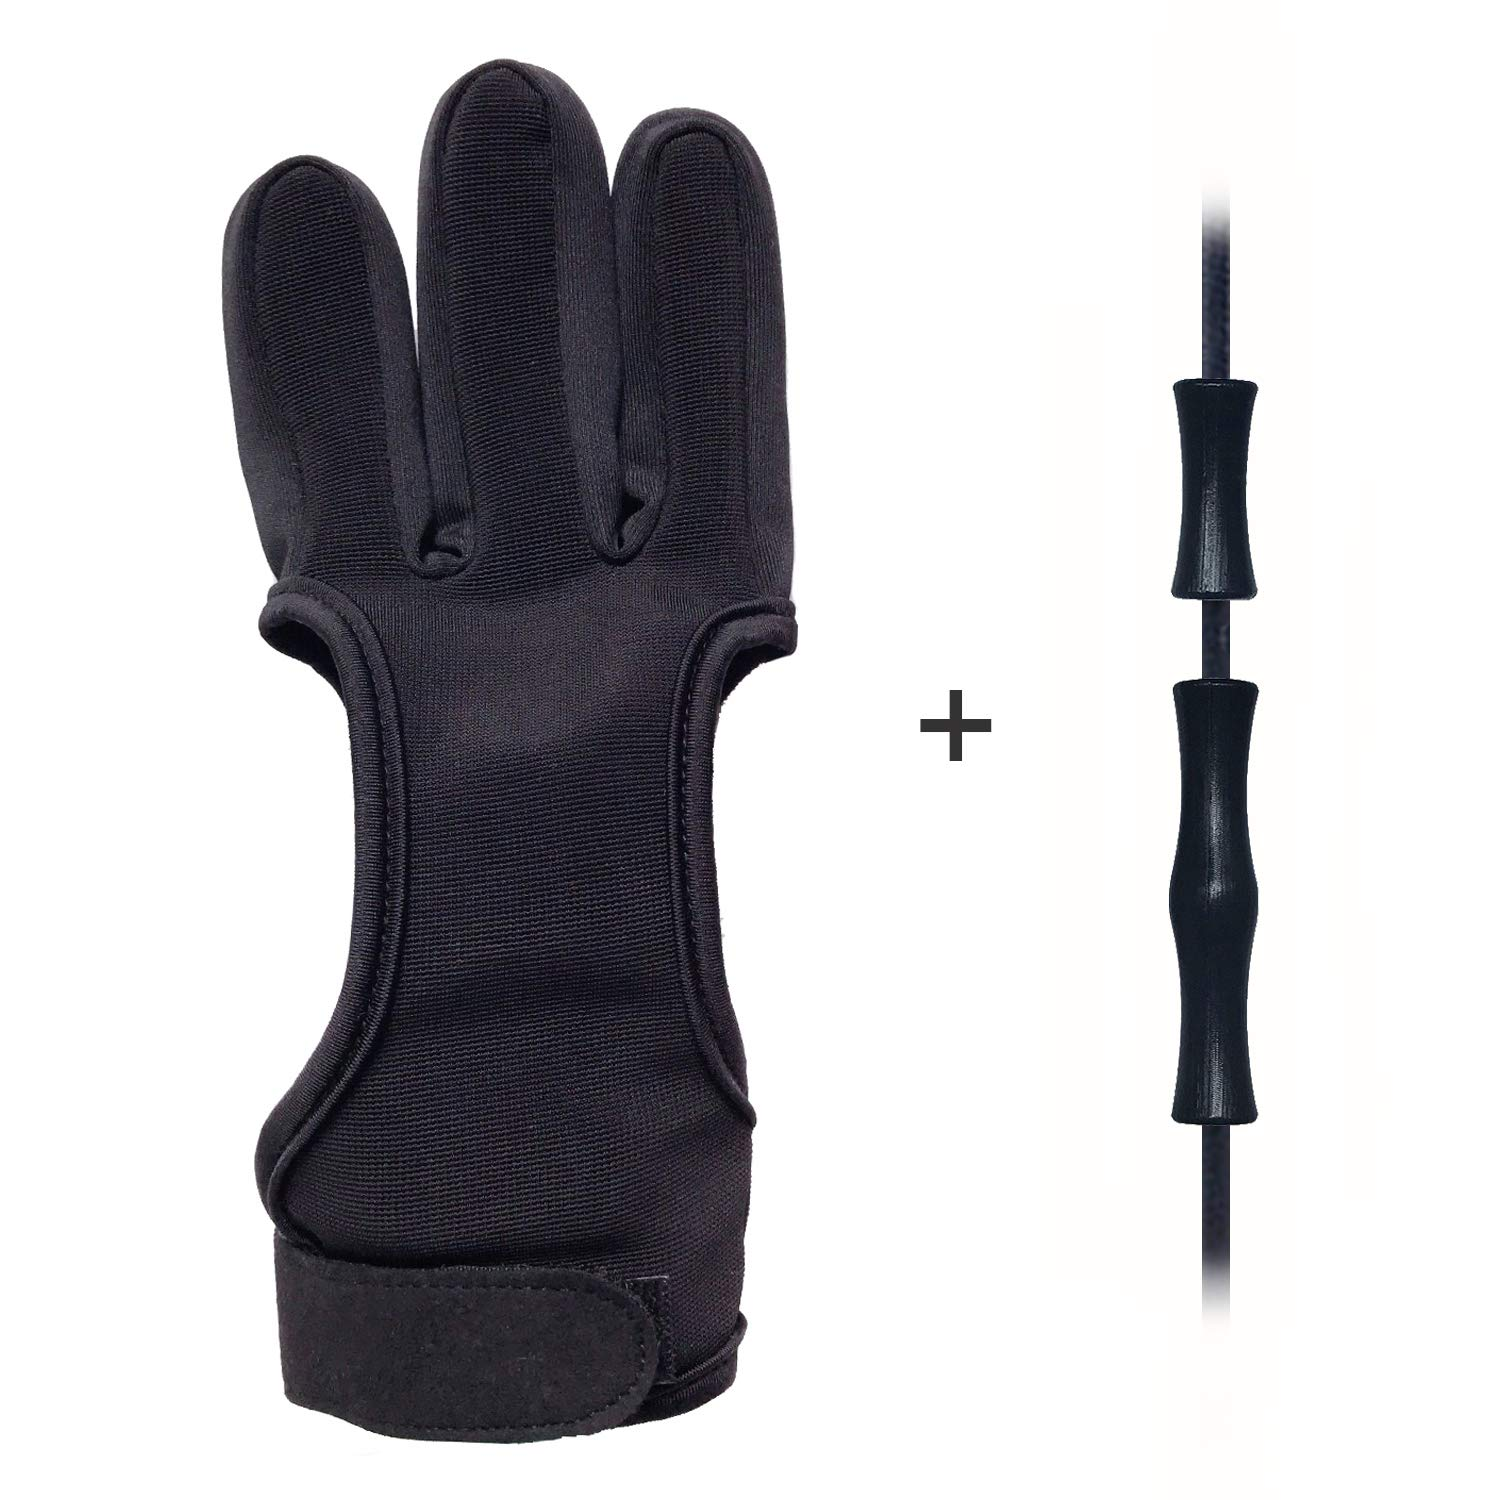 Eamber Archery Shooting Leather Protective